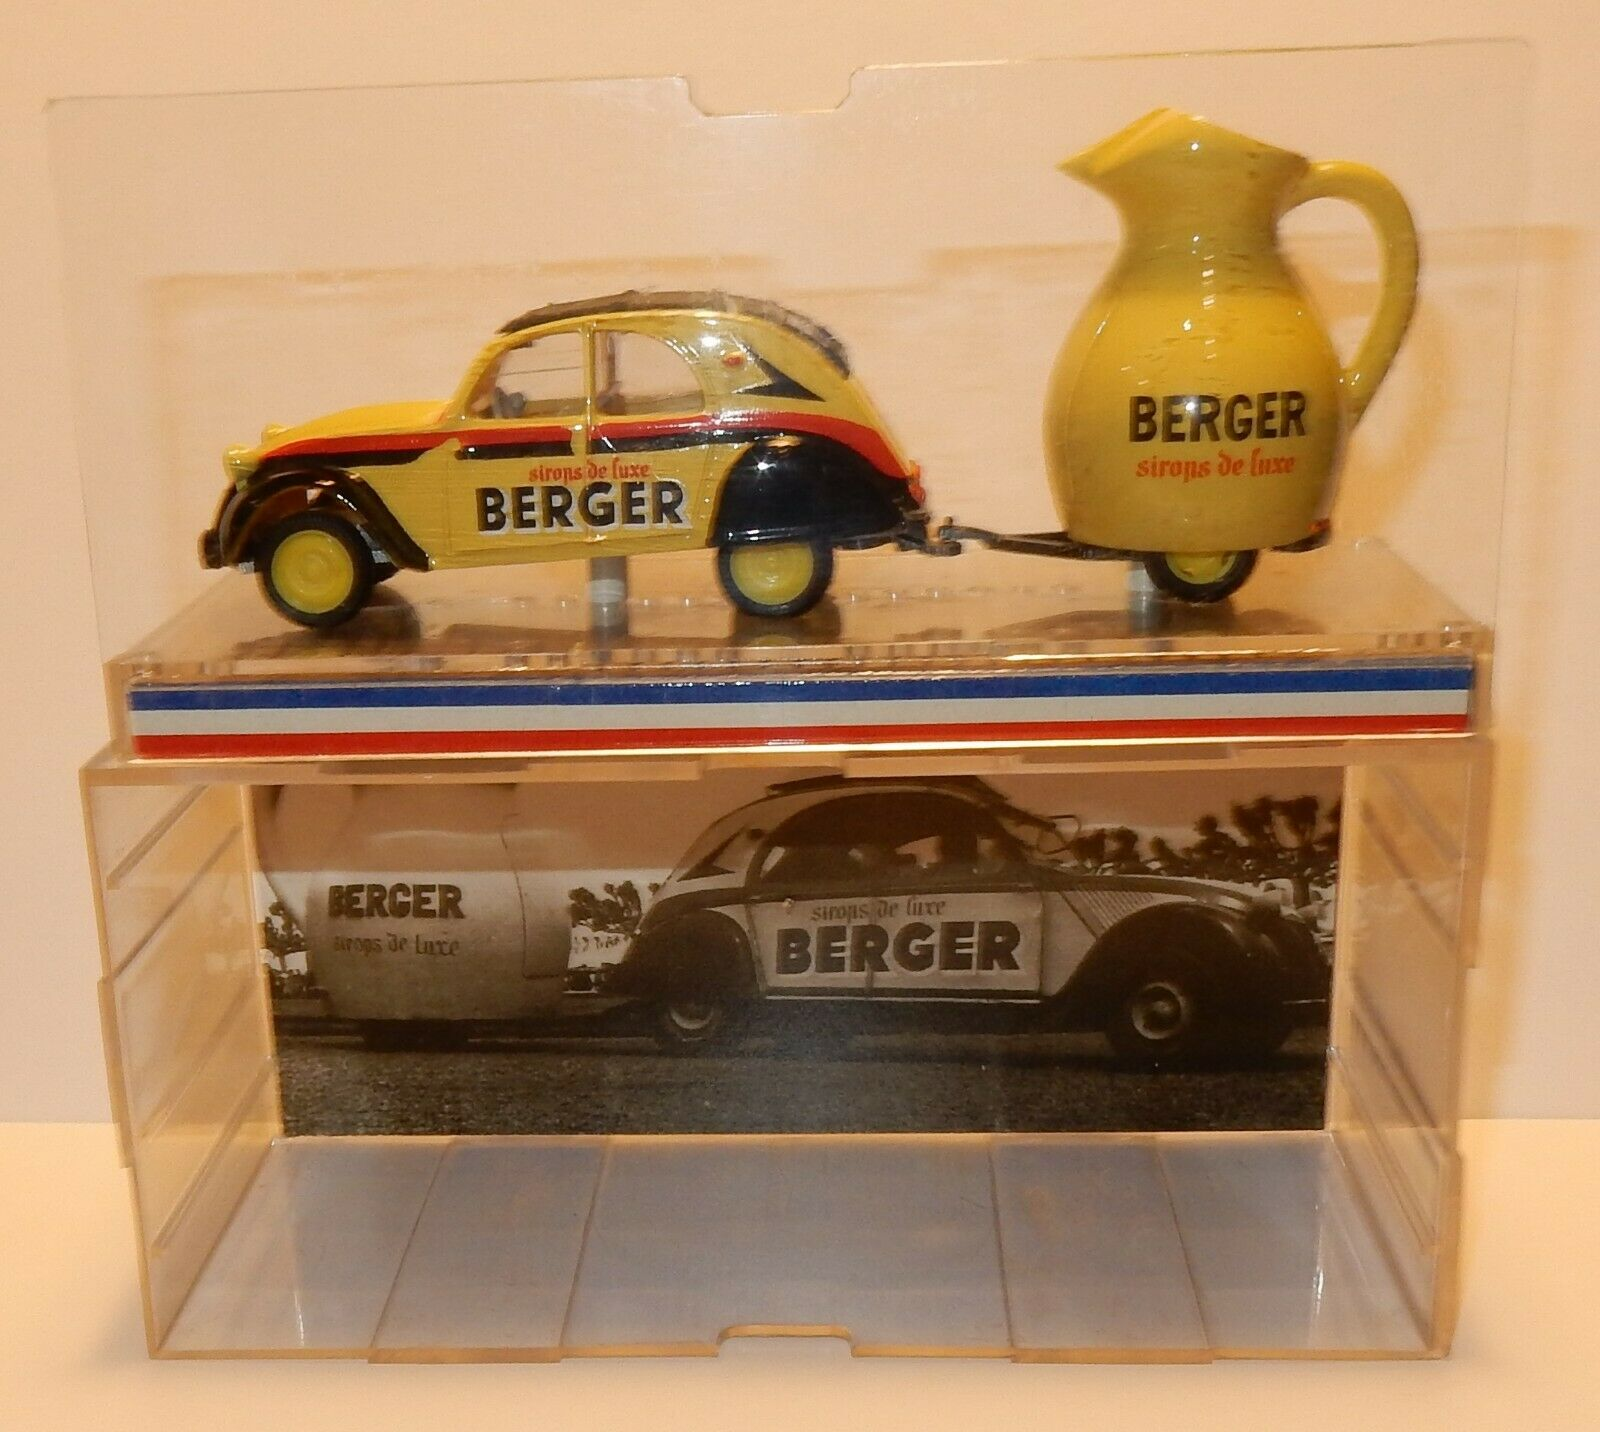 RARE TOUR DE FRANCE NOREV CITROEN 2CV AZU 1955 BERGER SIROP DE LUXE IN BOX